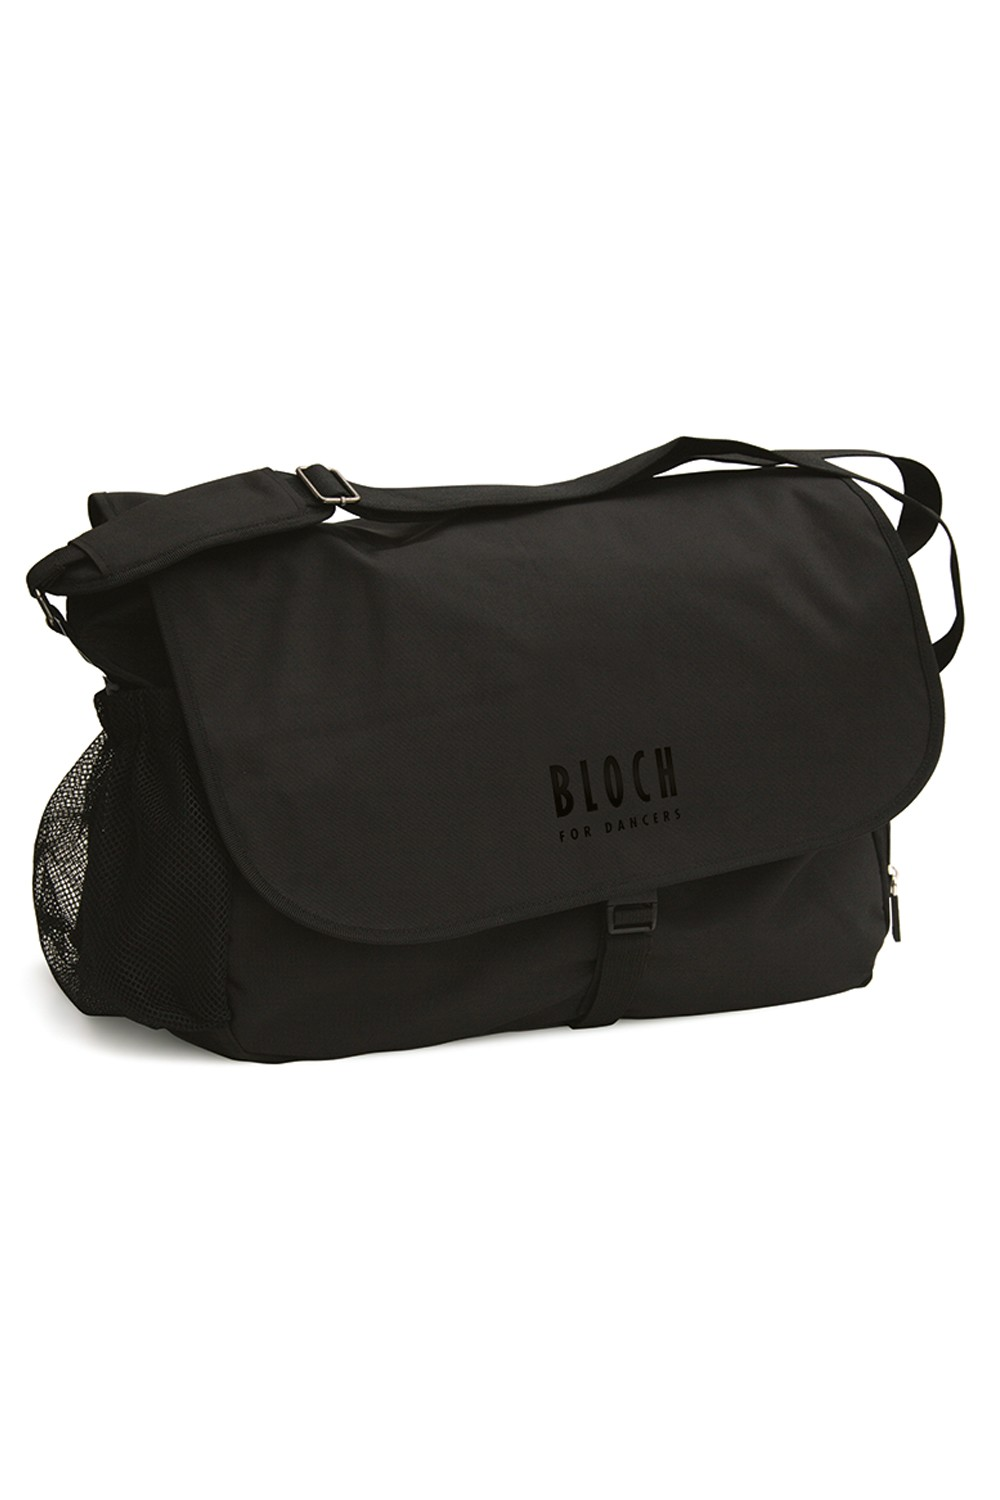 Bloch Dance Bag  Dance Bags